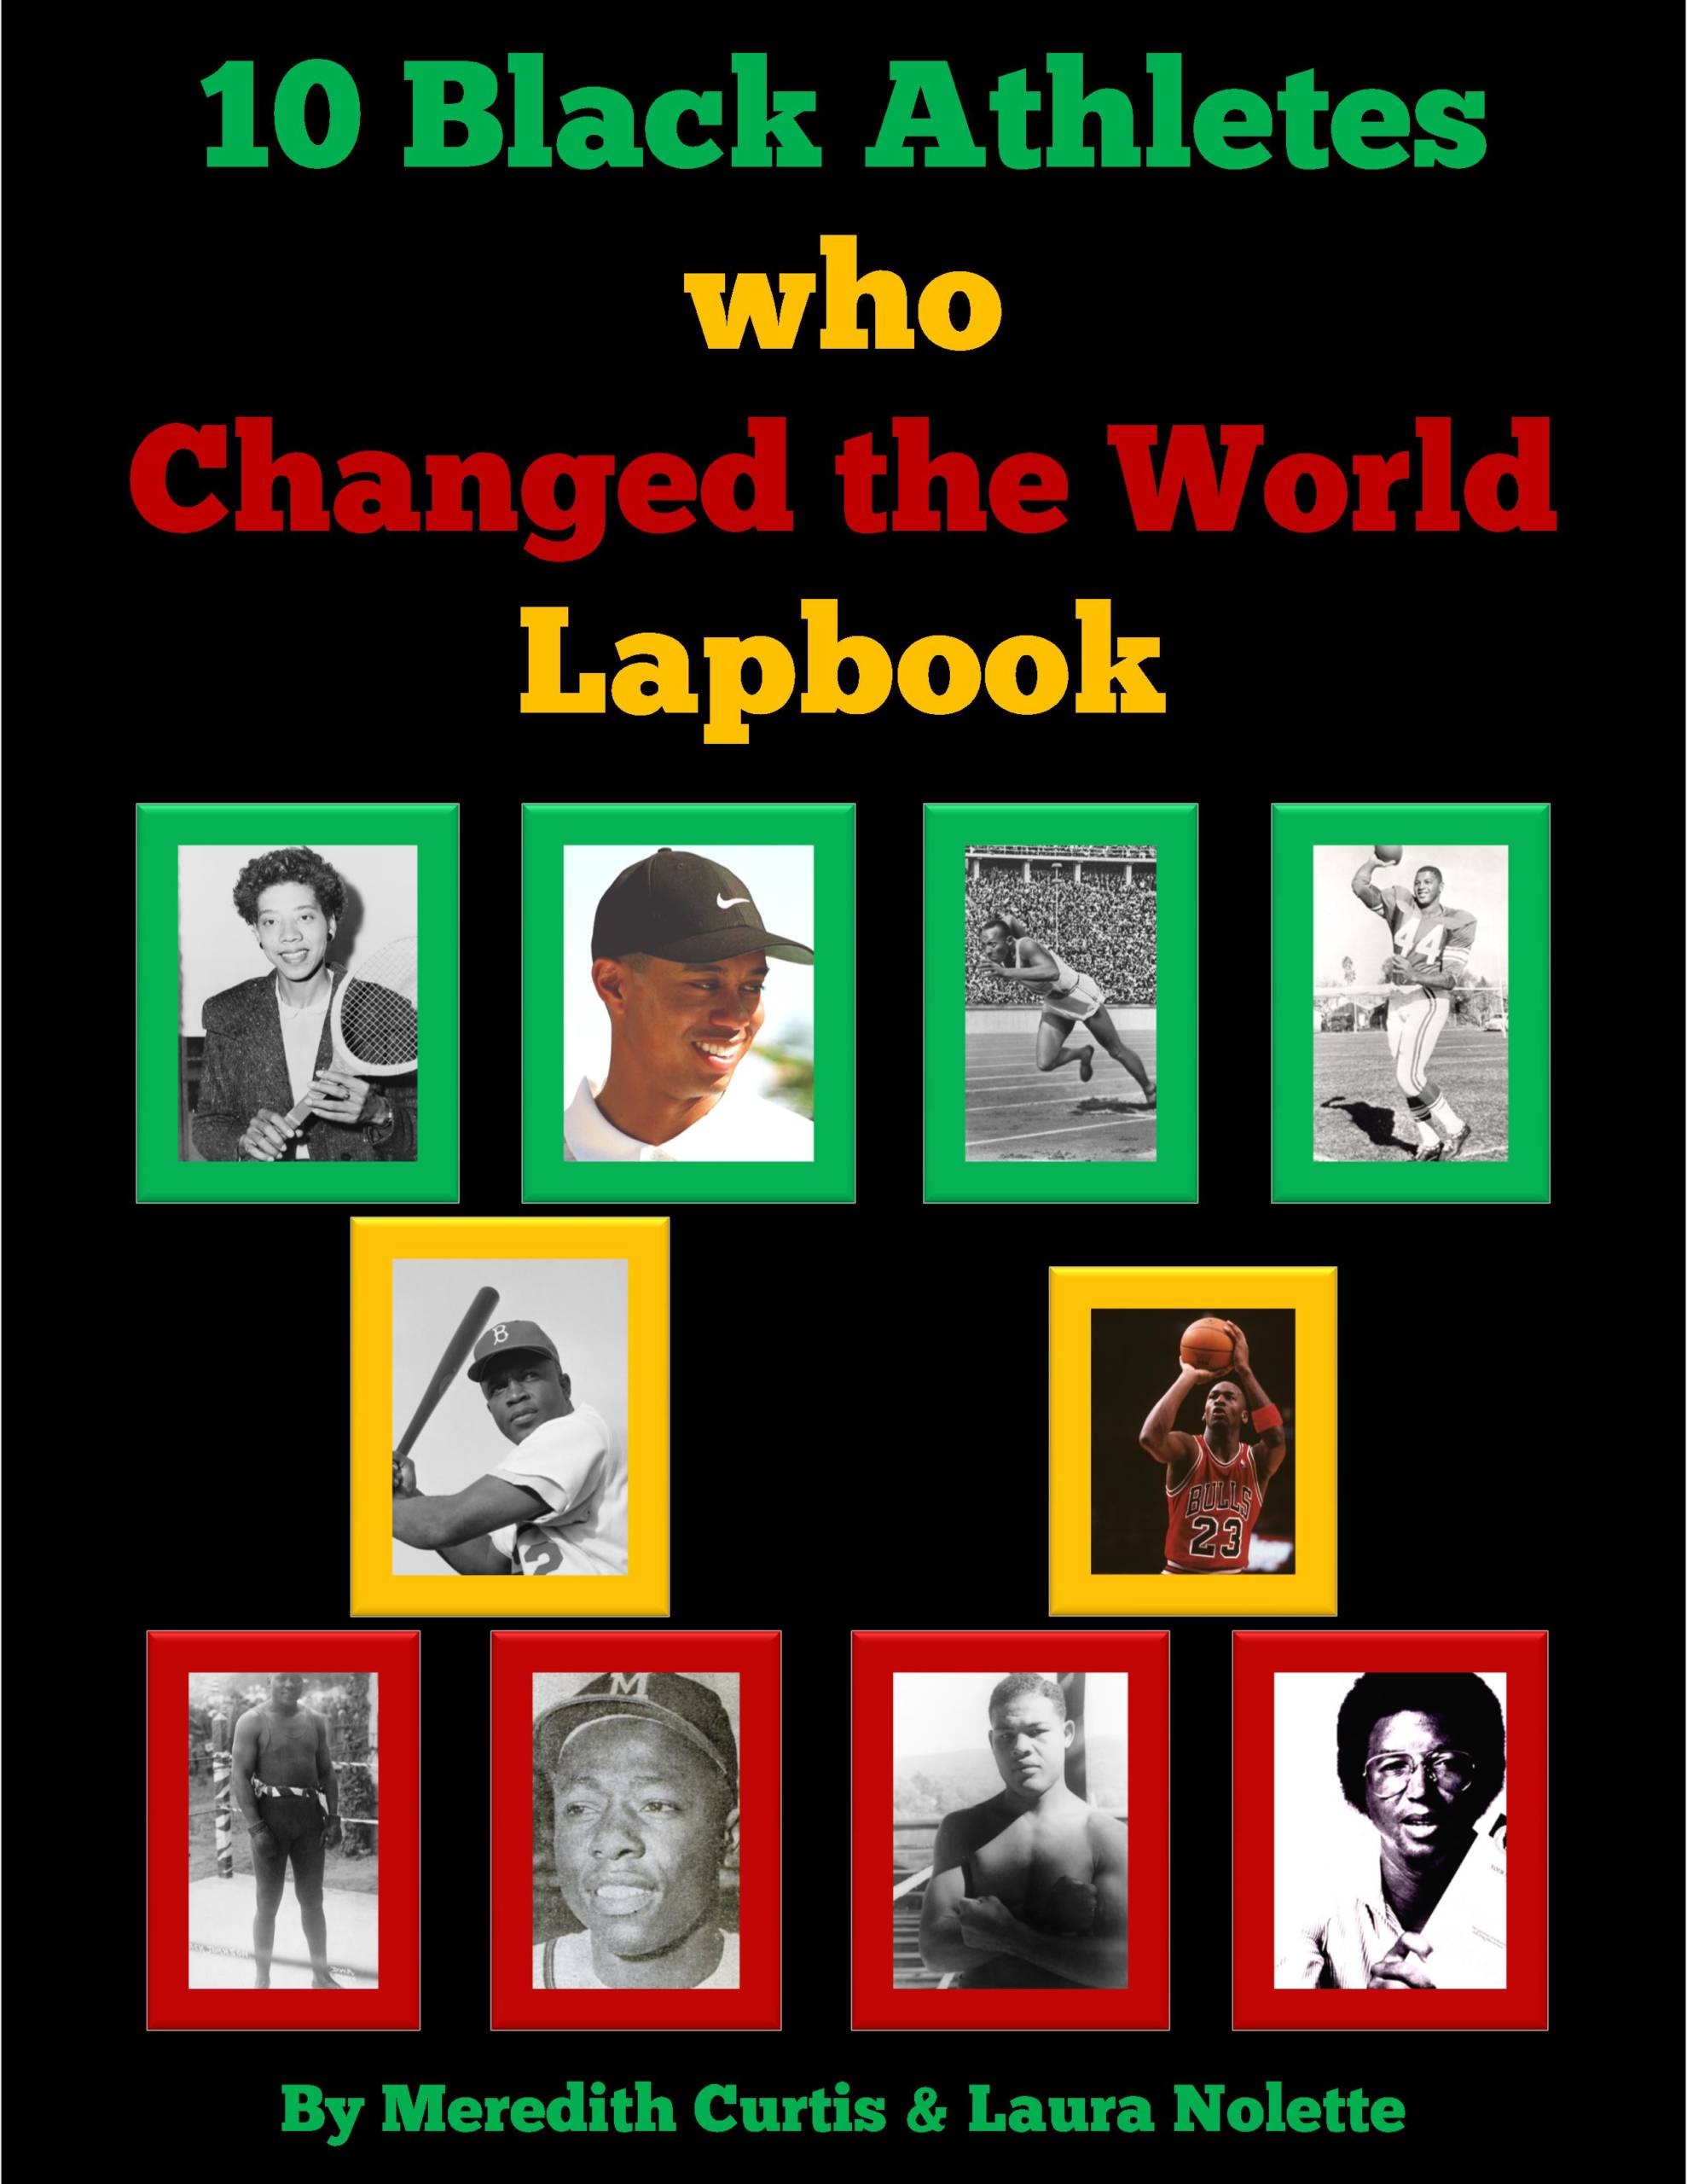 10m Black Athletes who Changed the World Lapbook by Meredith Curtis